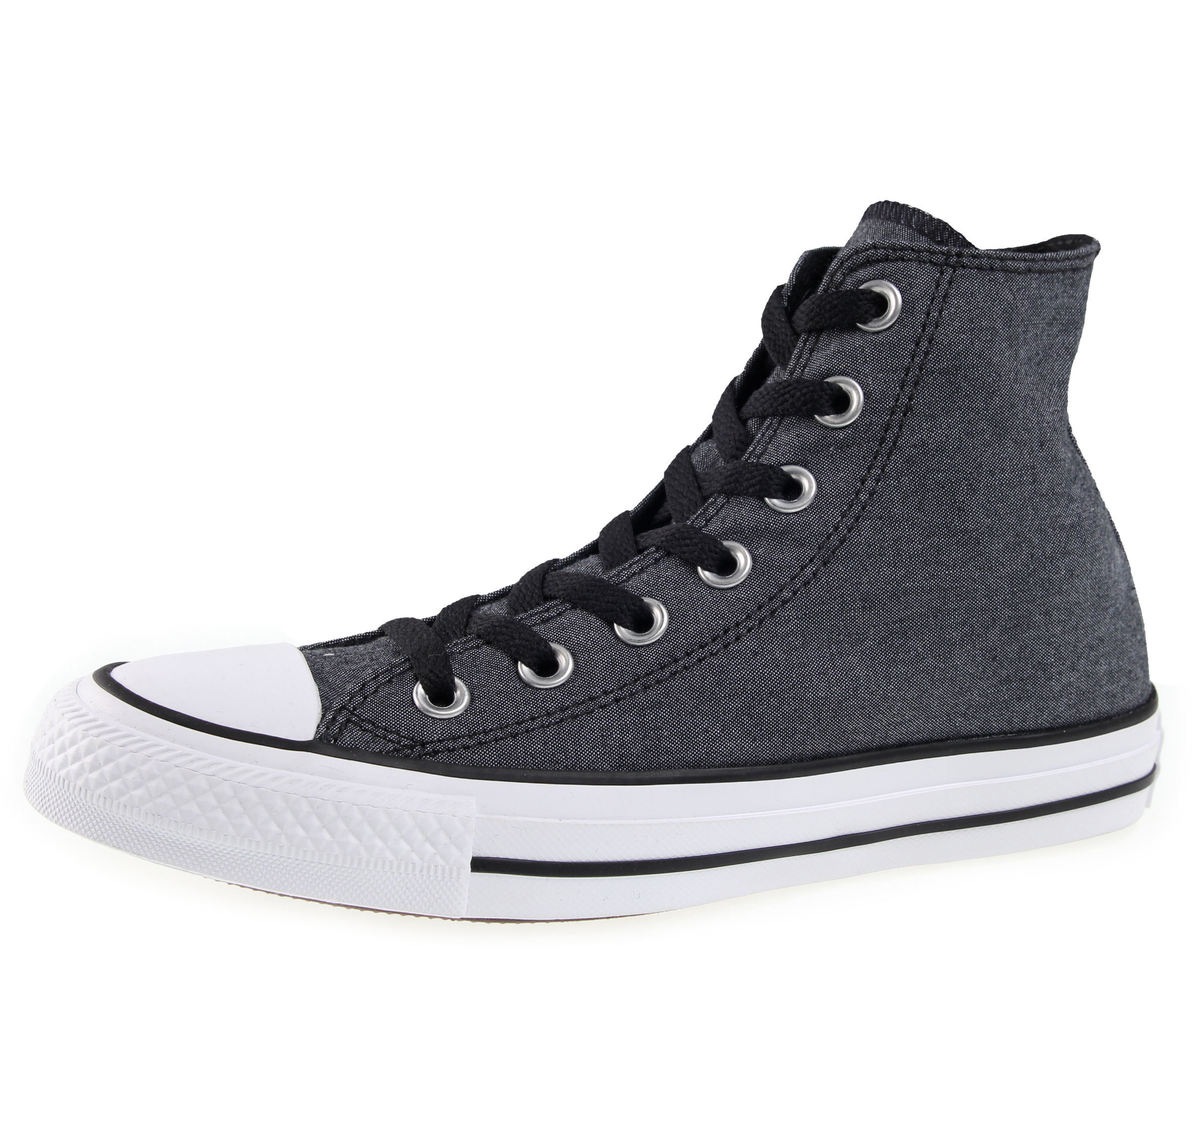 boty CONVERSE - Chuck Taylor All Star - C155386